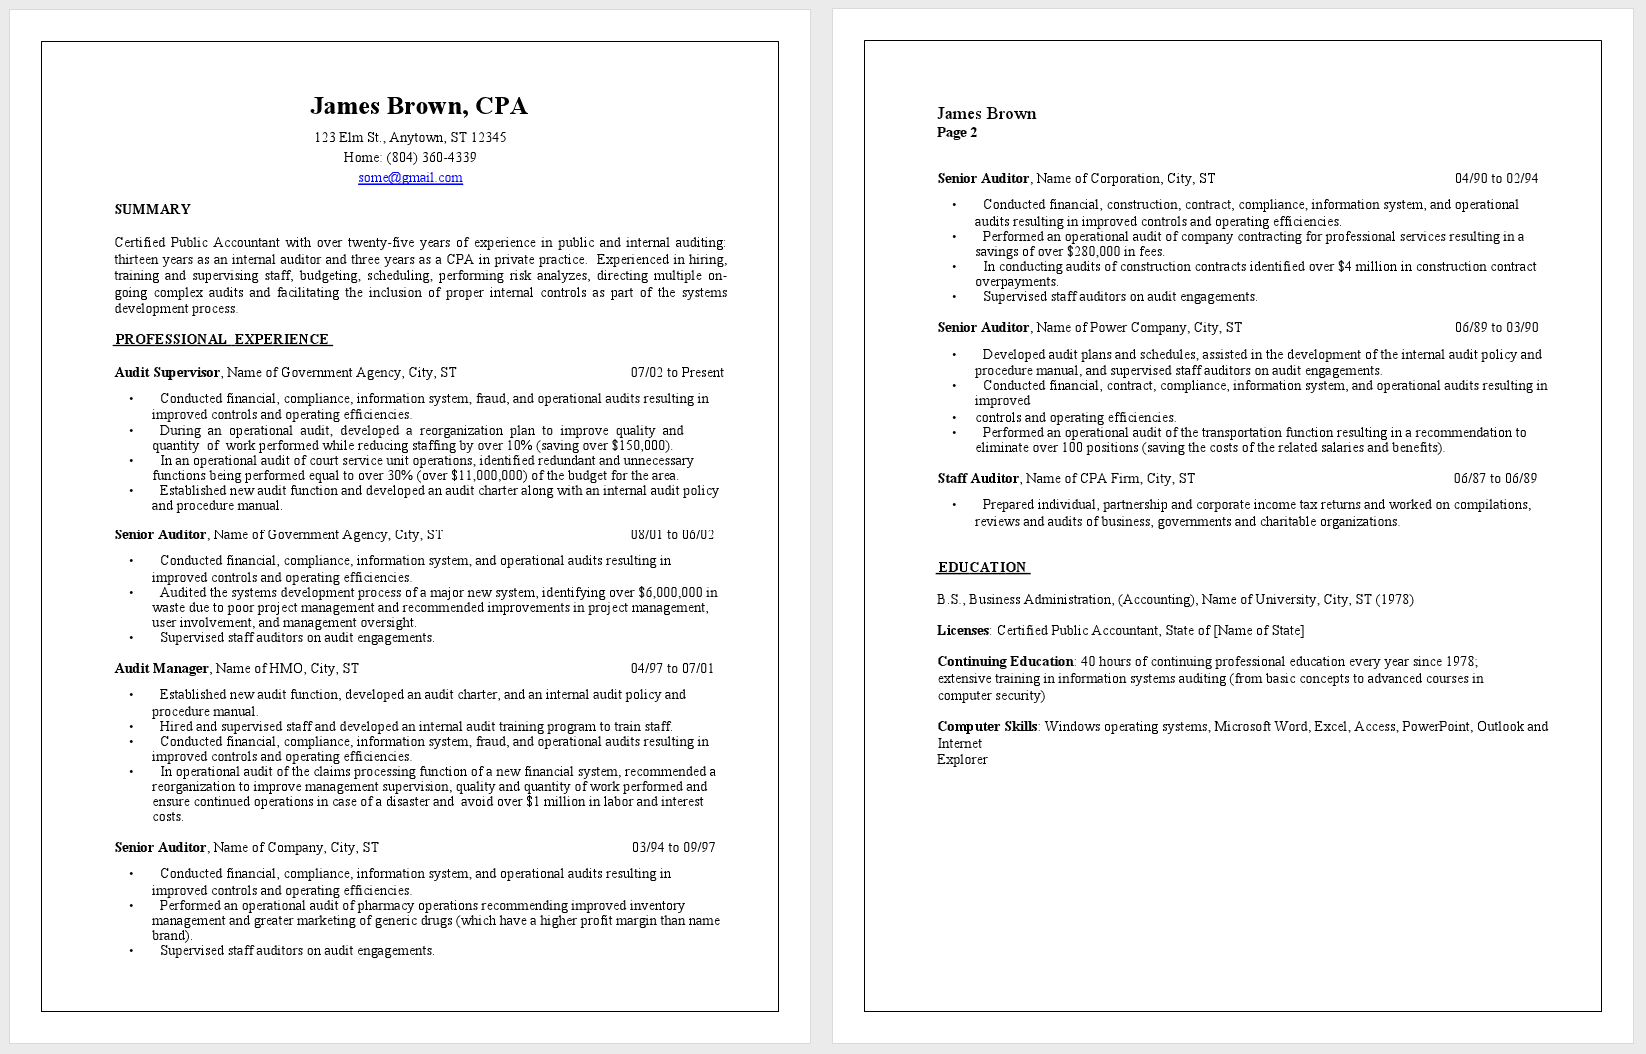 sample resume cpa flight operation officer sample resume also cv writing service for accountants ssays for sale cpa resume sample cvwriting service for accountants